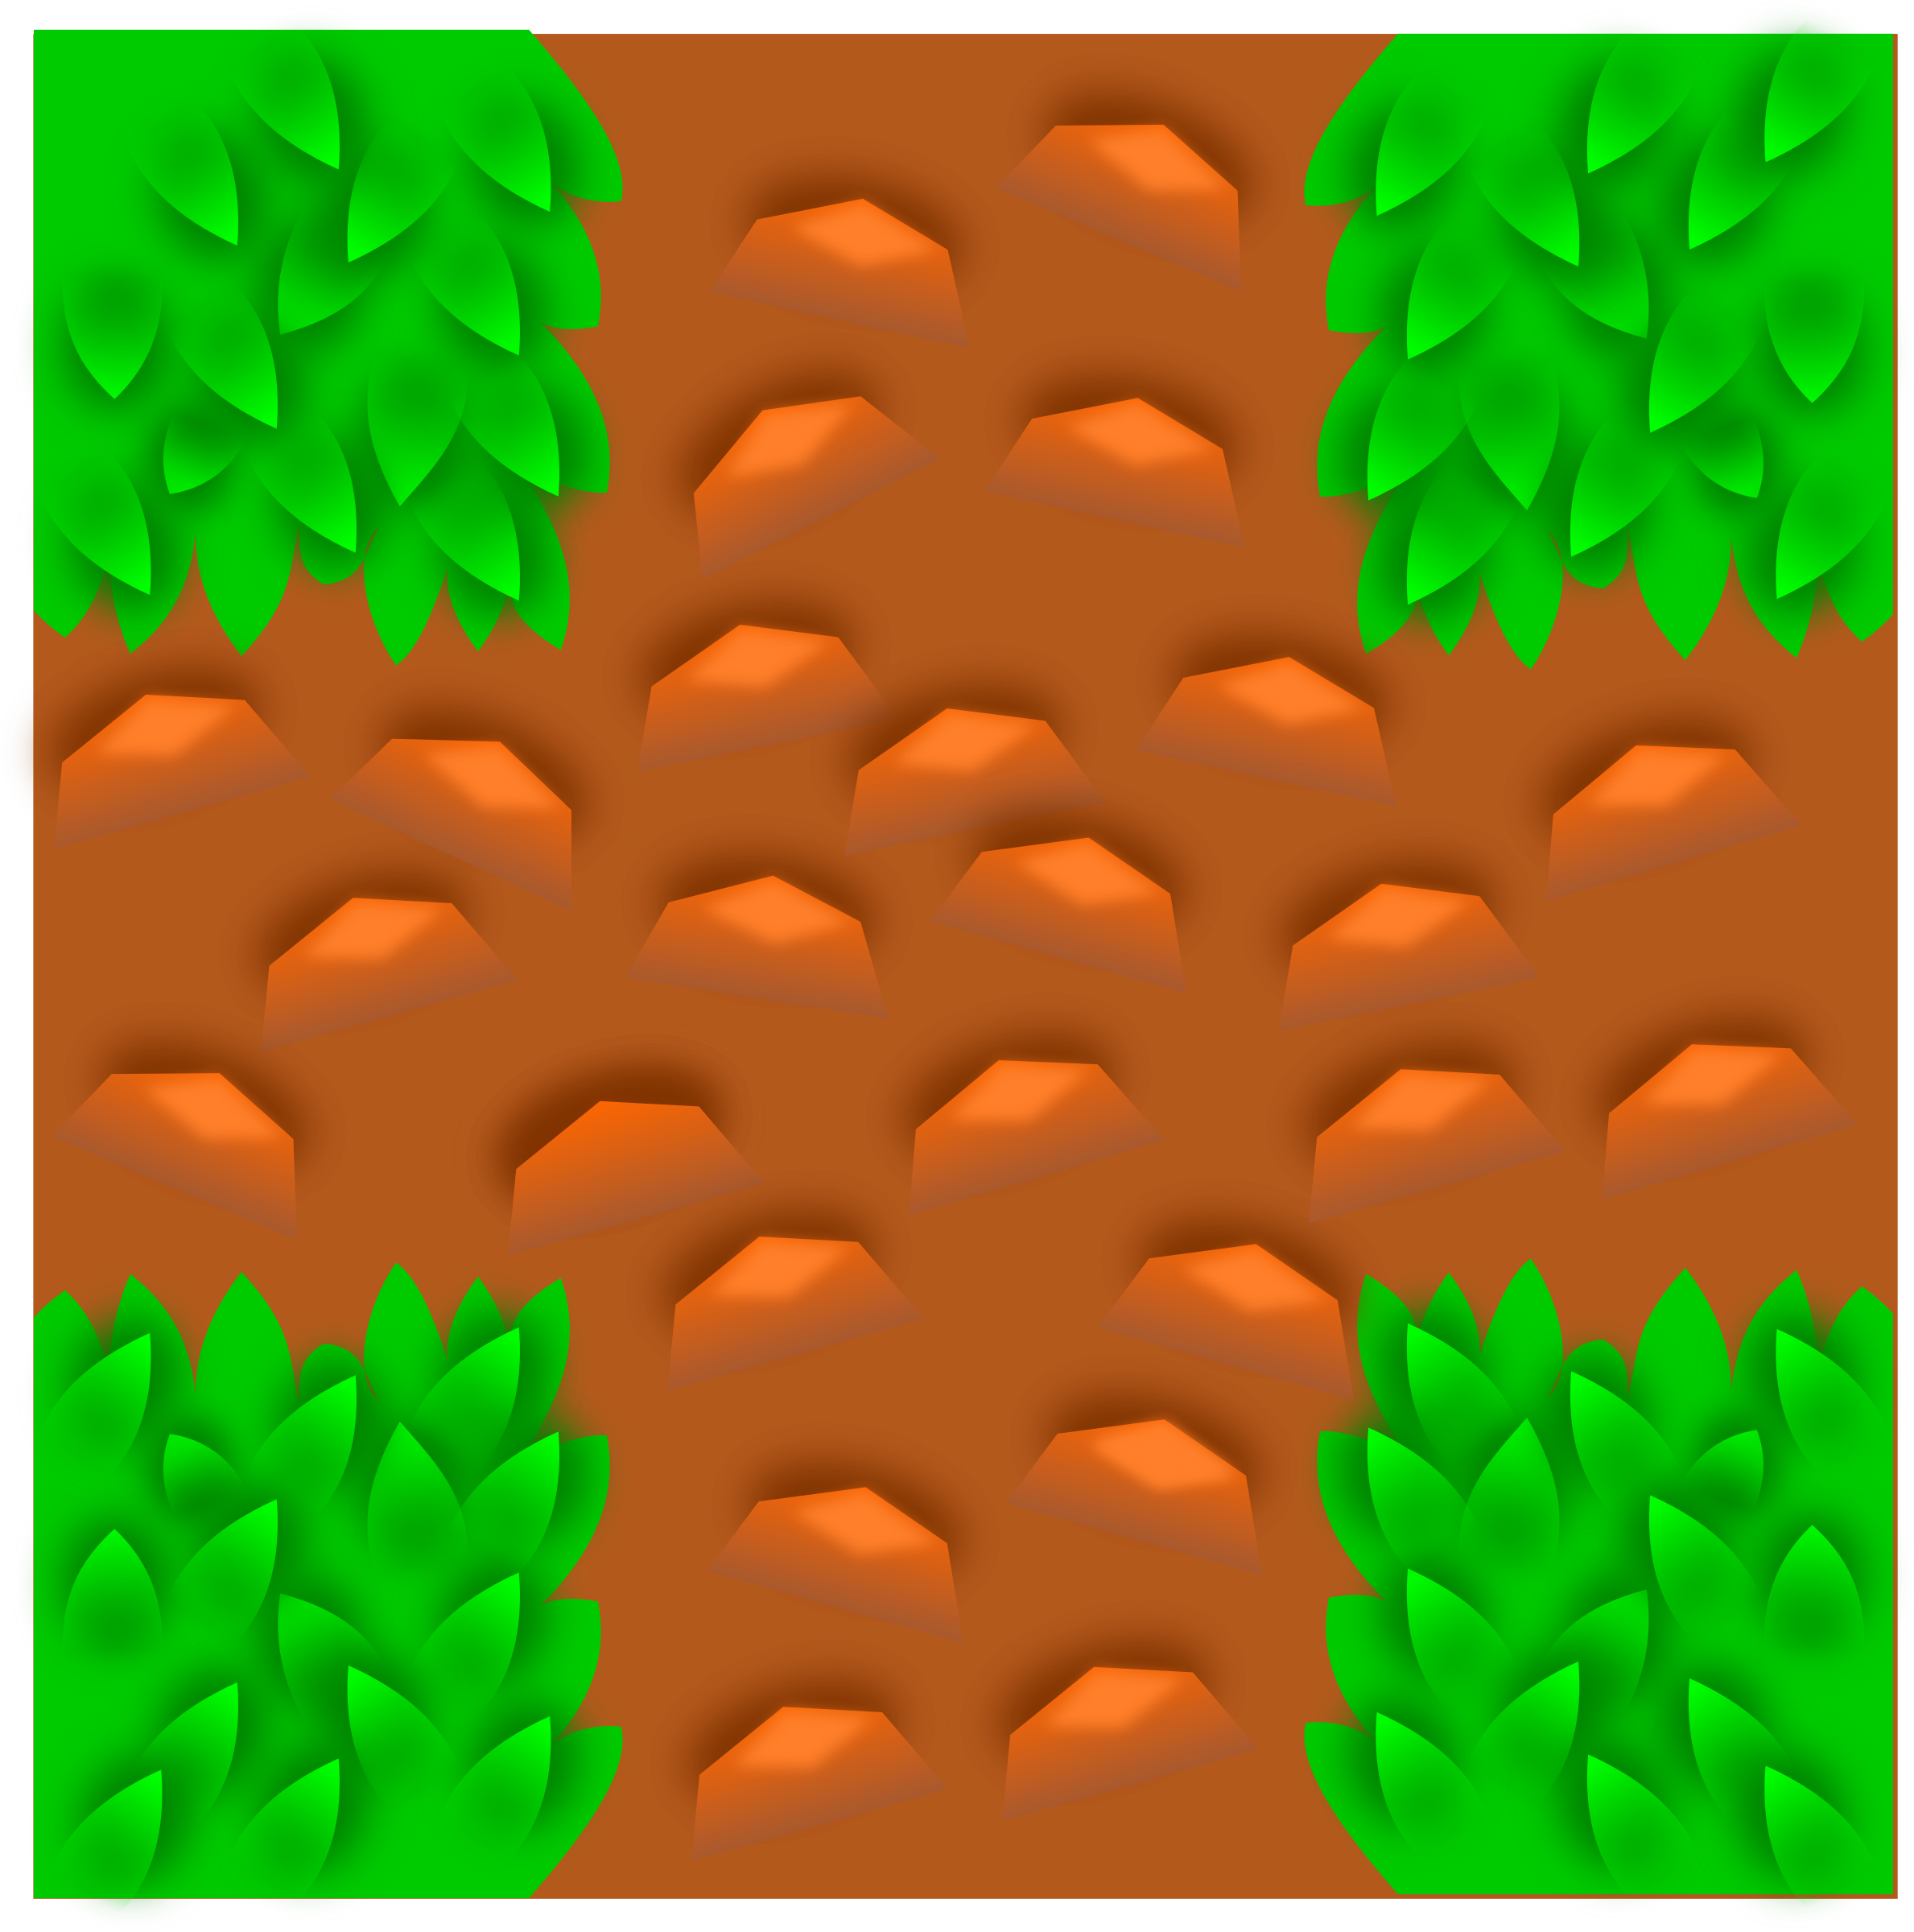 Tile vector. Clipart grass pattern game